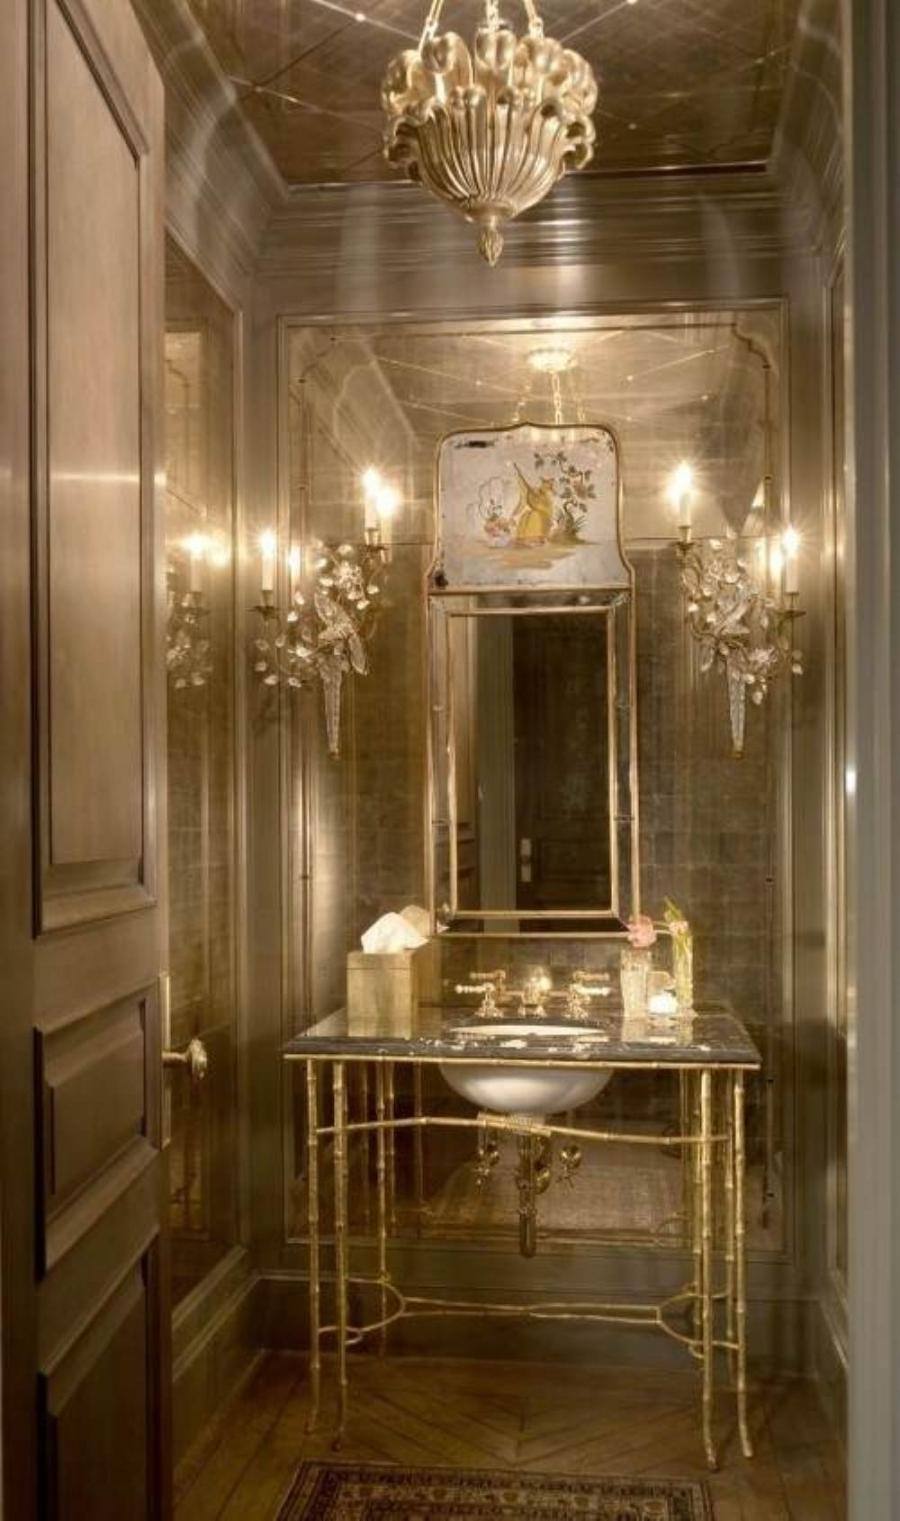 Photos of beautiful powder rooms Bathroom design ideas houzz